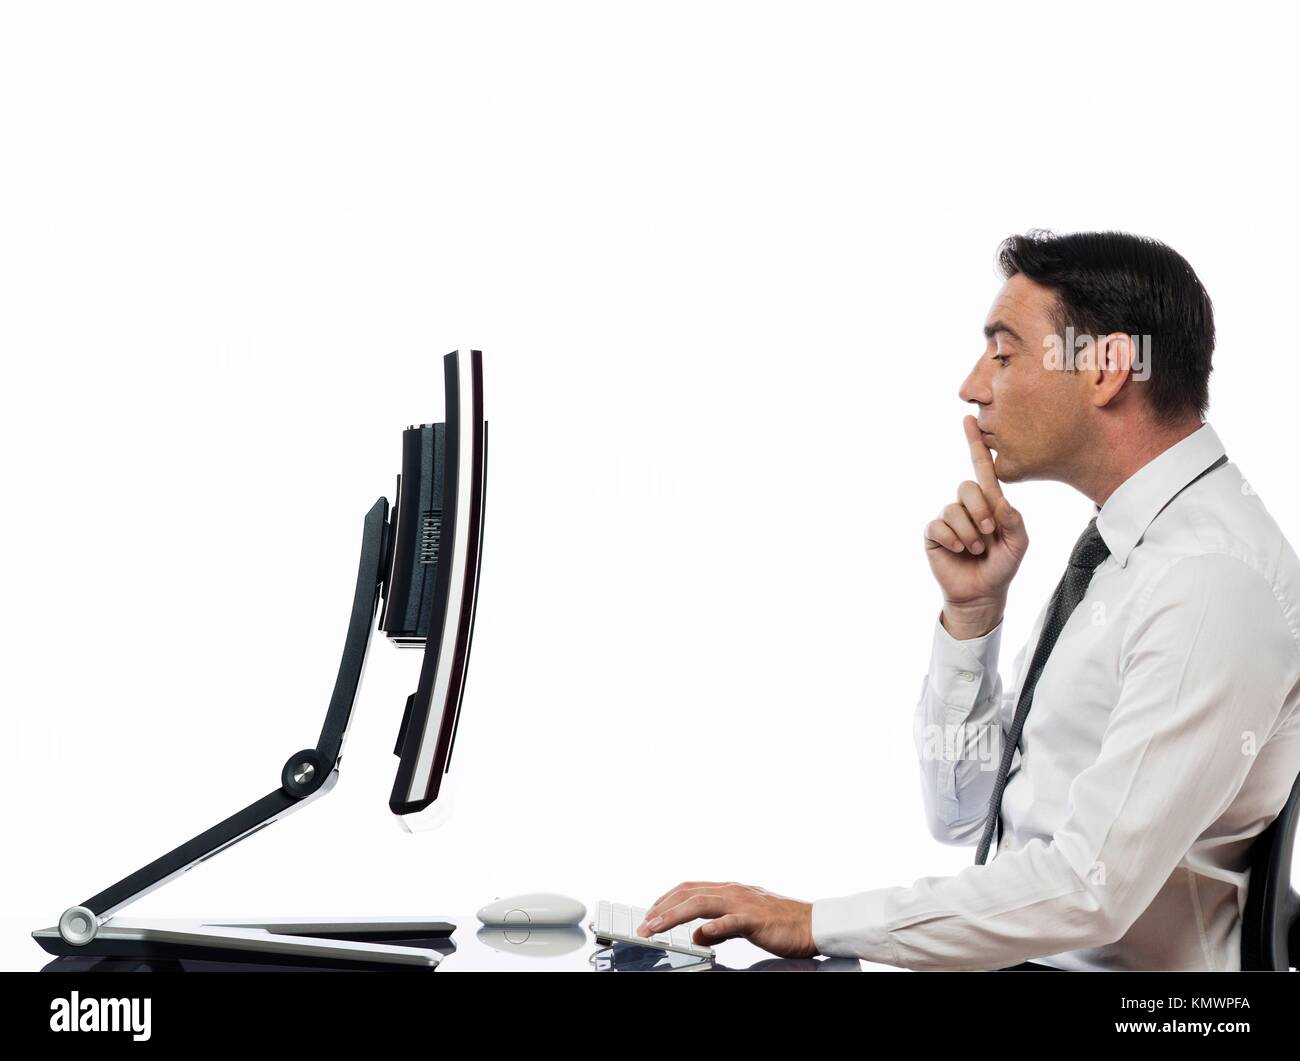 relationship between a caucasian man and a computer display monitor on isolated white background expressing secrecy - Stock Image